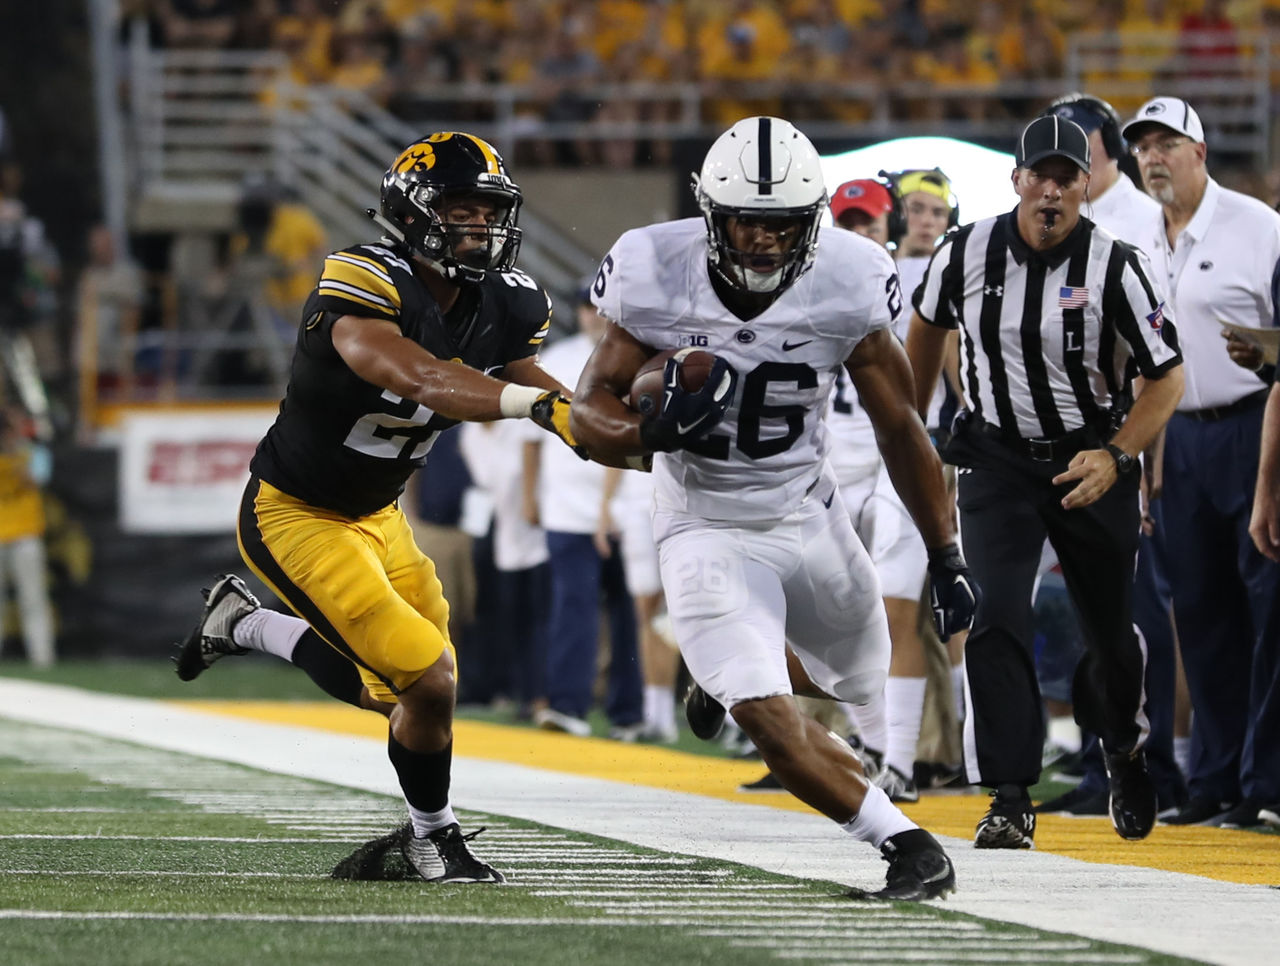 Cropped_2017-09-24t015040z_542970135_nocid_rtrmadp_3_ncaa-football-penn-state-at-iowa